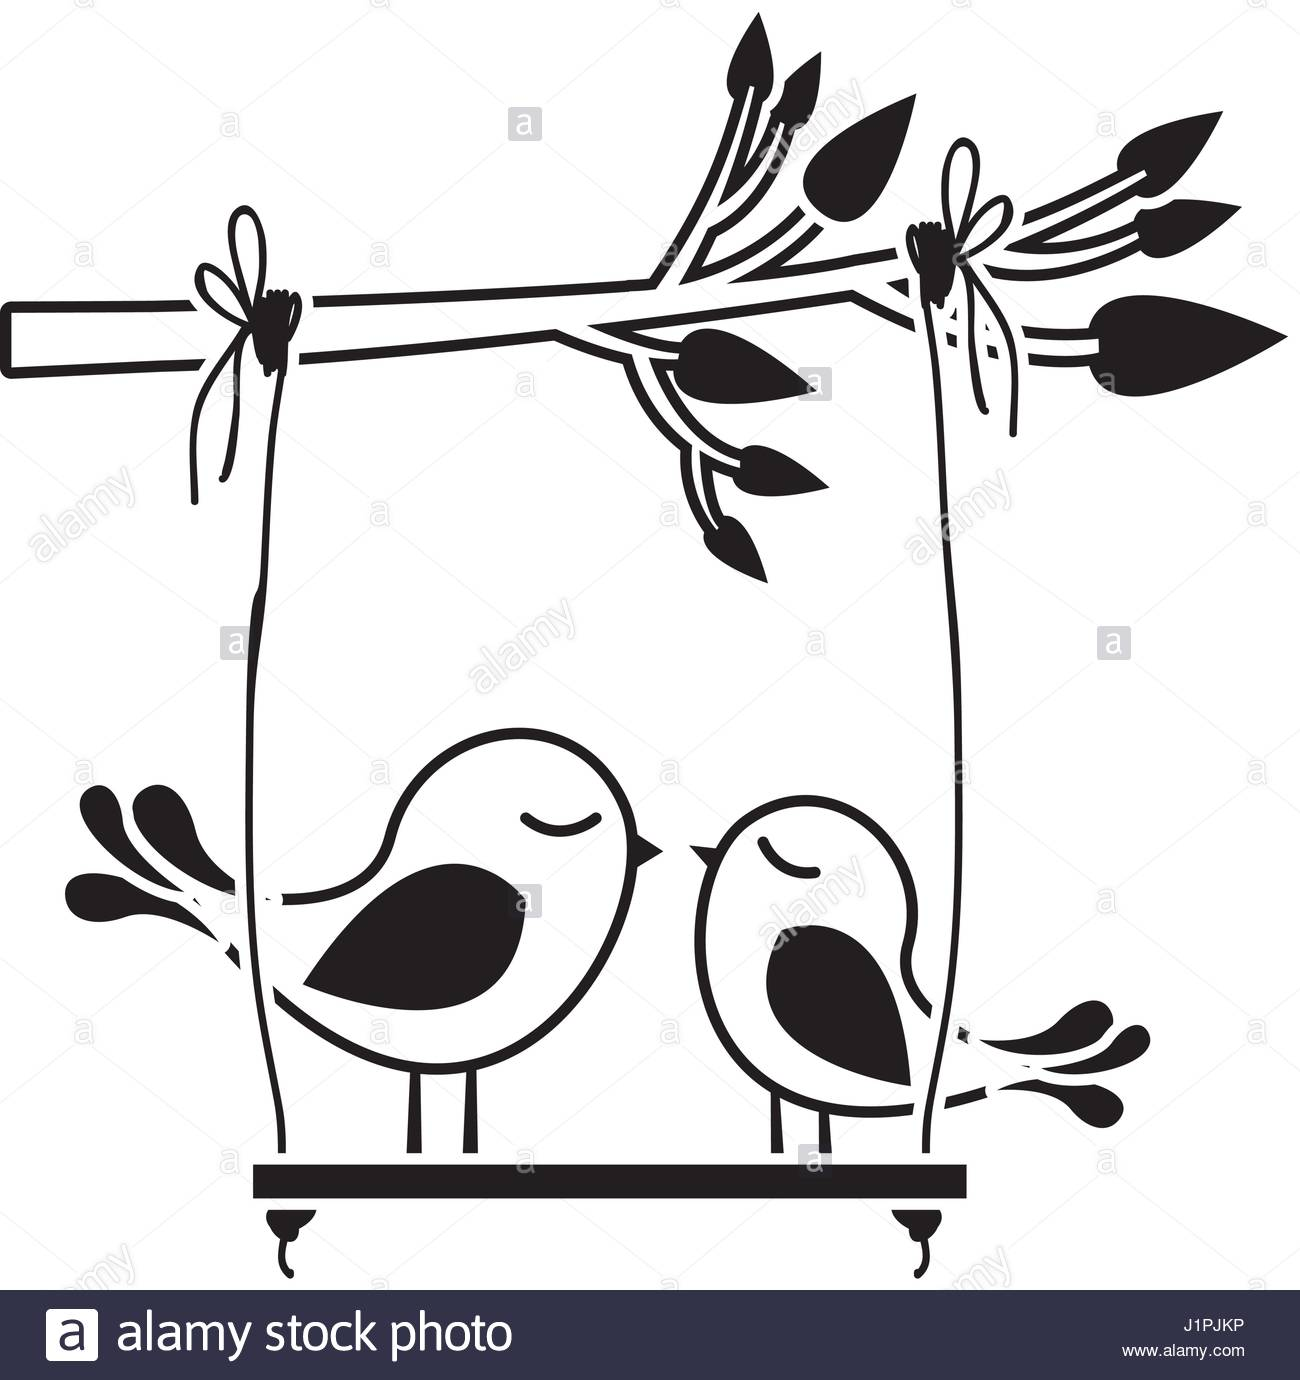 1300x1380 Black Silhouette Of Tree Branch With Swing And Couple Of Birds